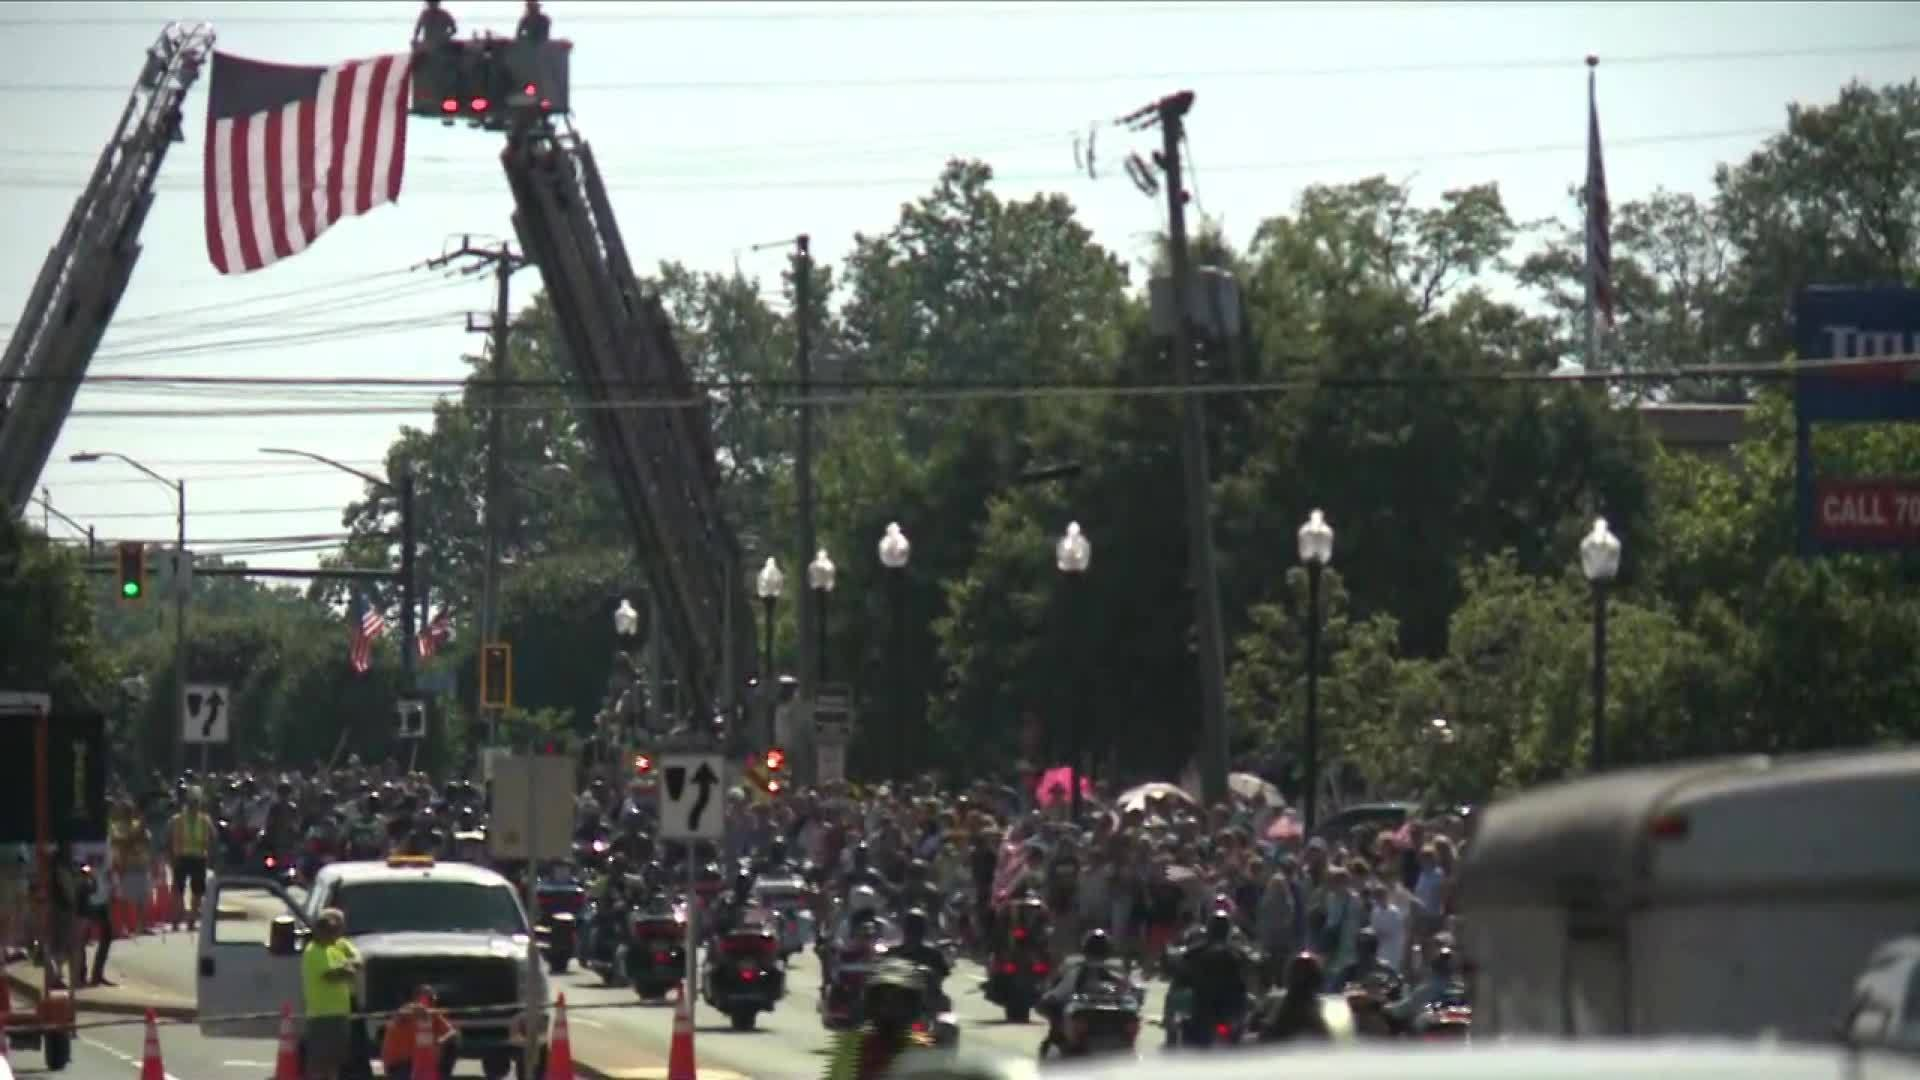 Rolling Thunder has final national motorcycle rally